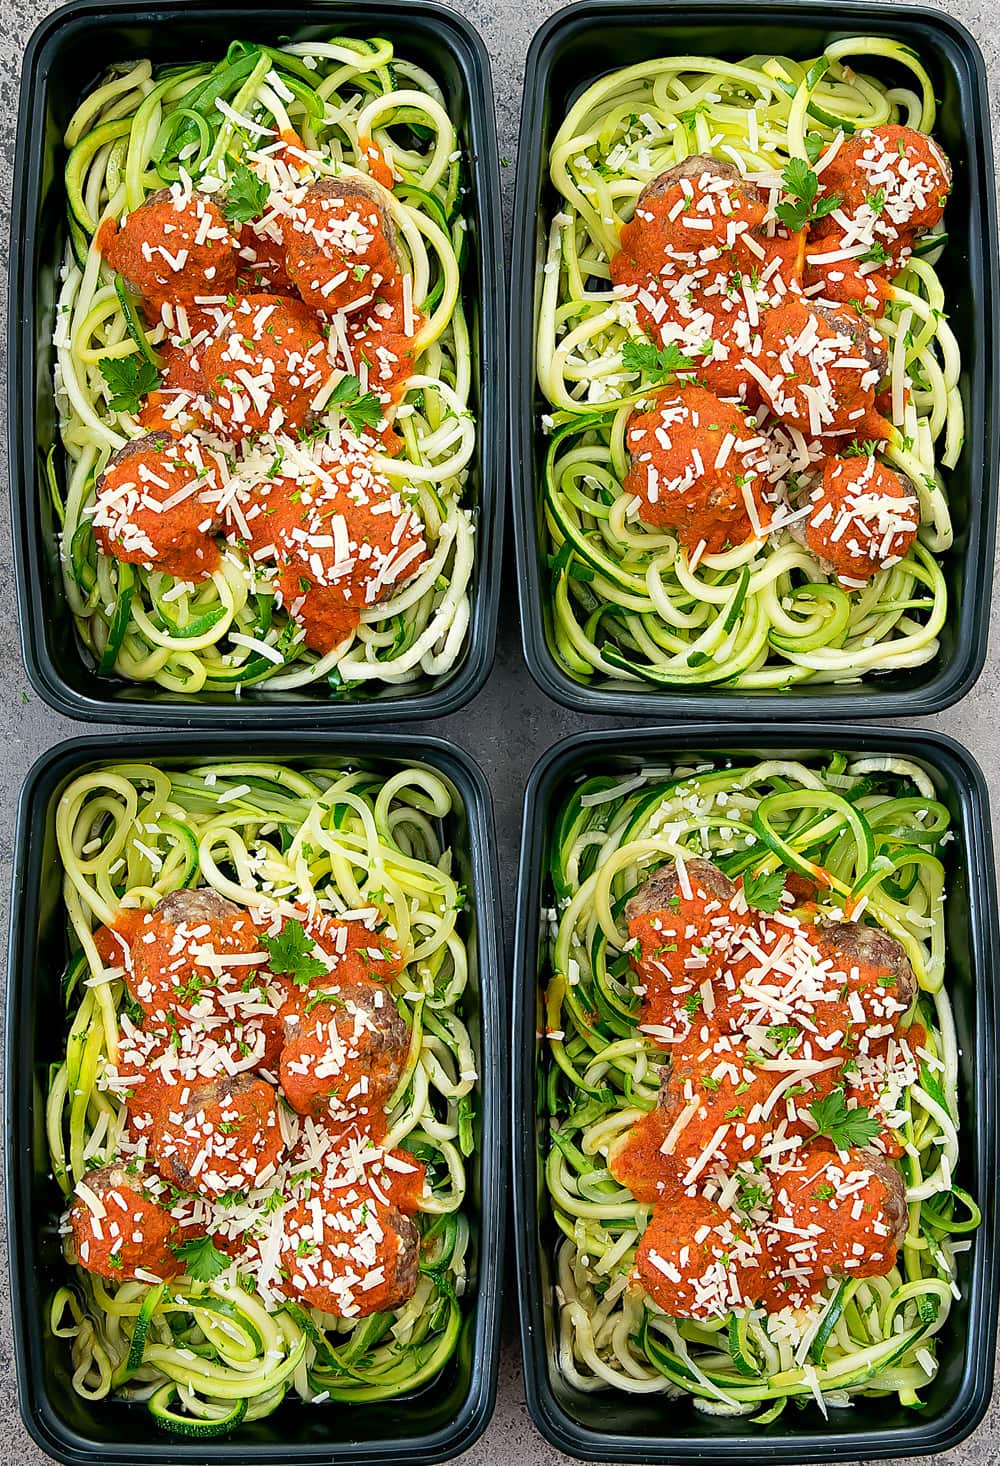 Zucchini Noodles With Meatballs Meal Prep Keto Low Carb